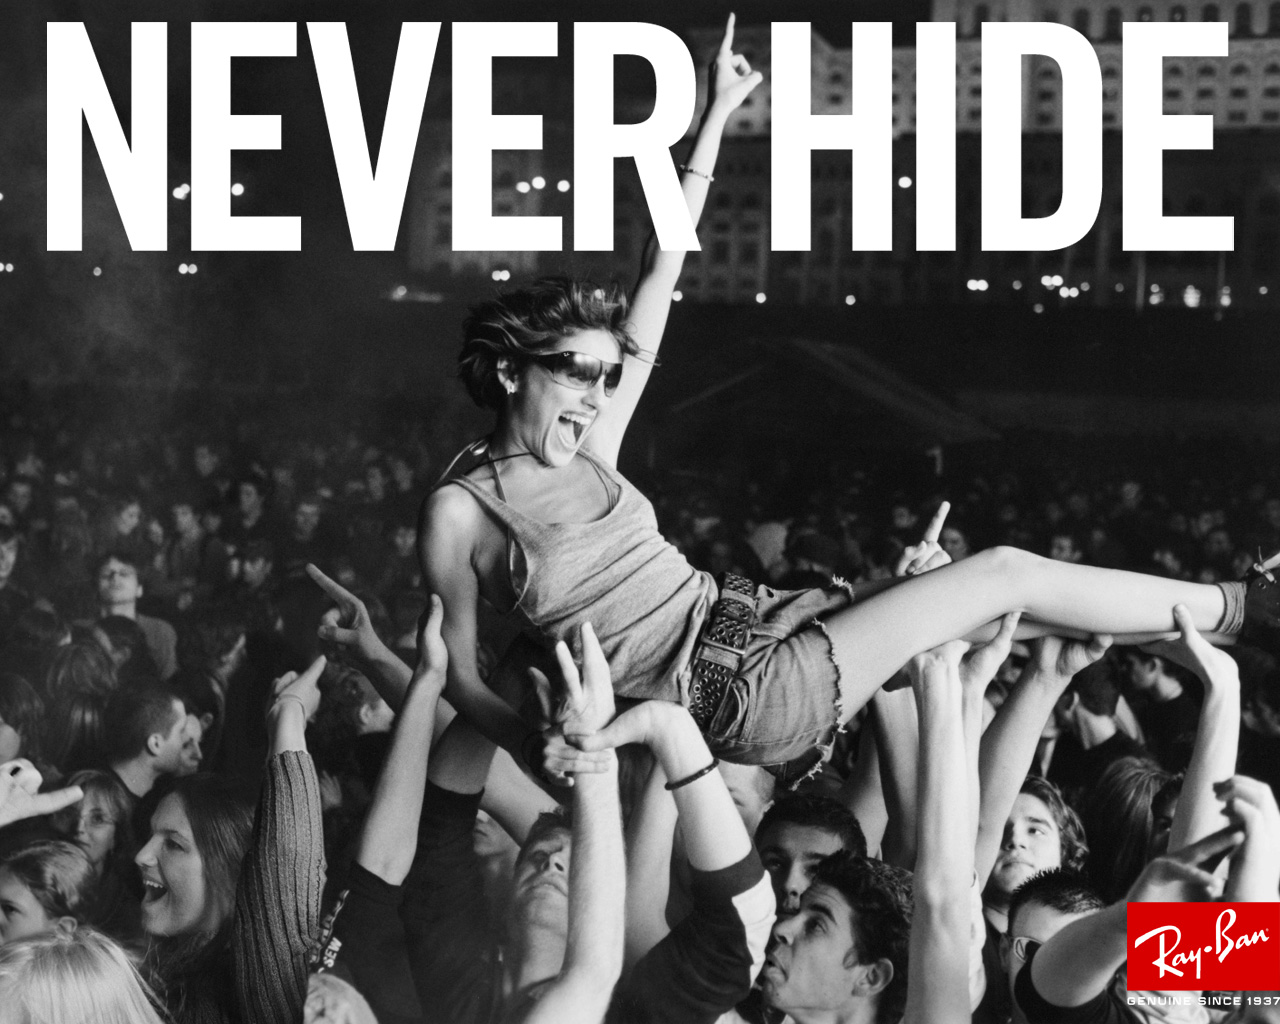 ray-ban-never-hide-sunglases-4-1280x1024-fashion-wallpaper.jpg